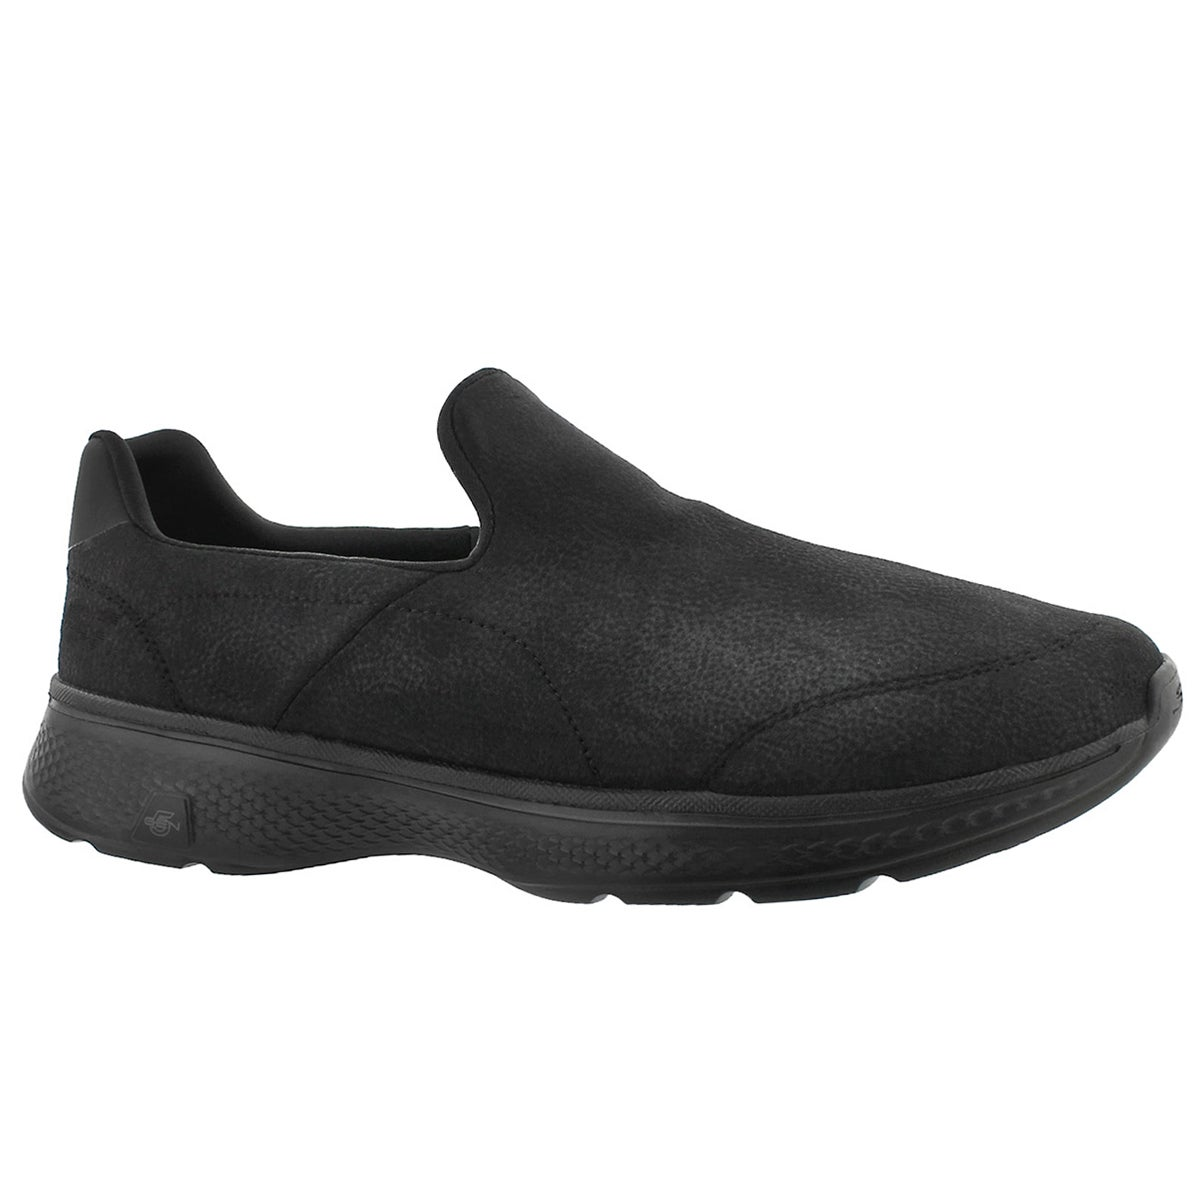 Men's GOwalk 4 REMARKABLE black slip on shoes